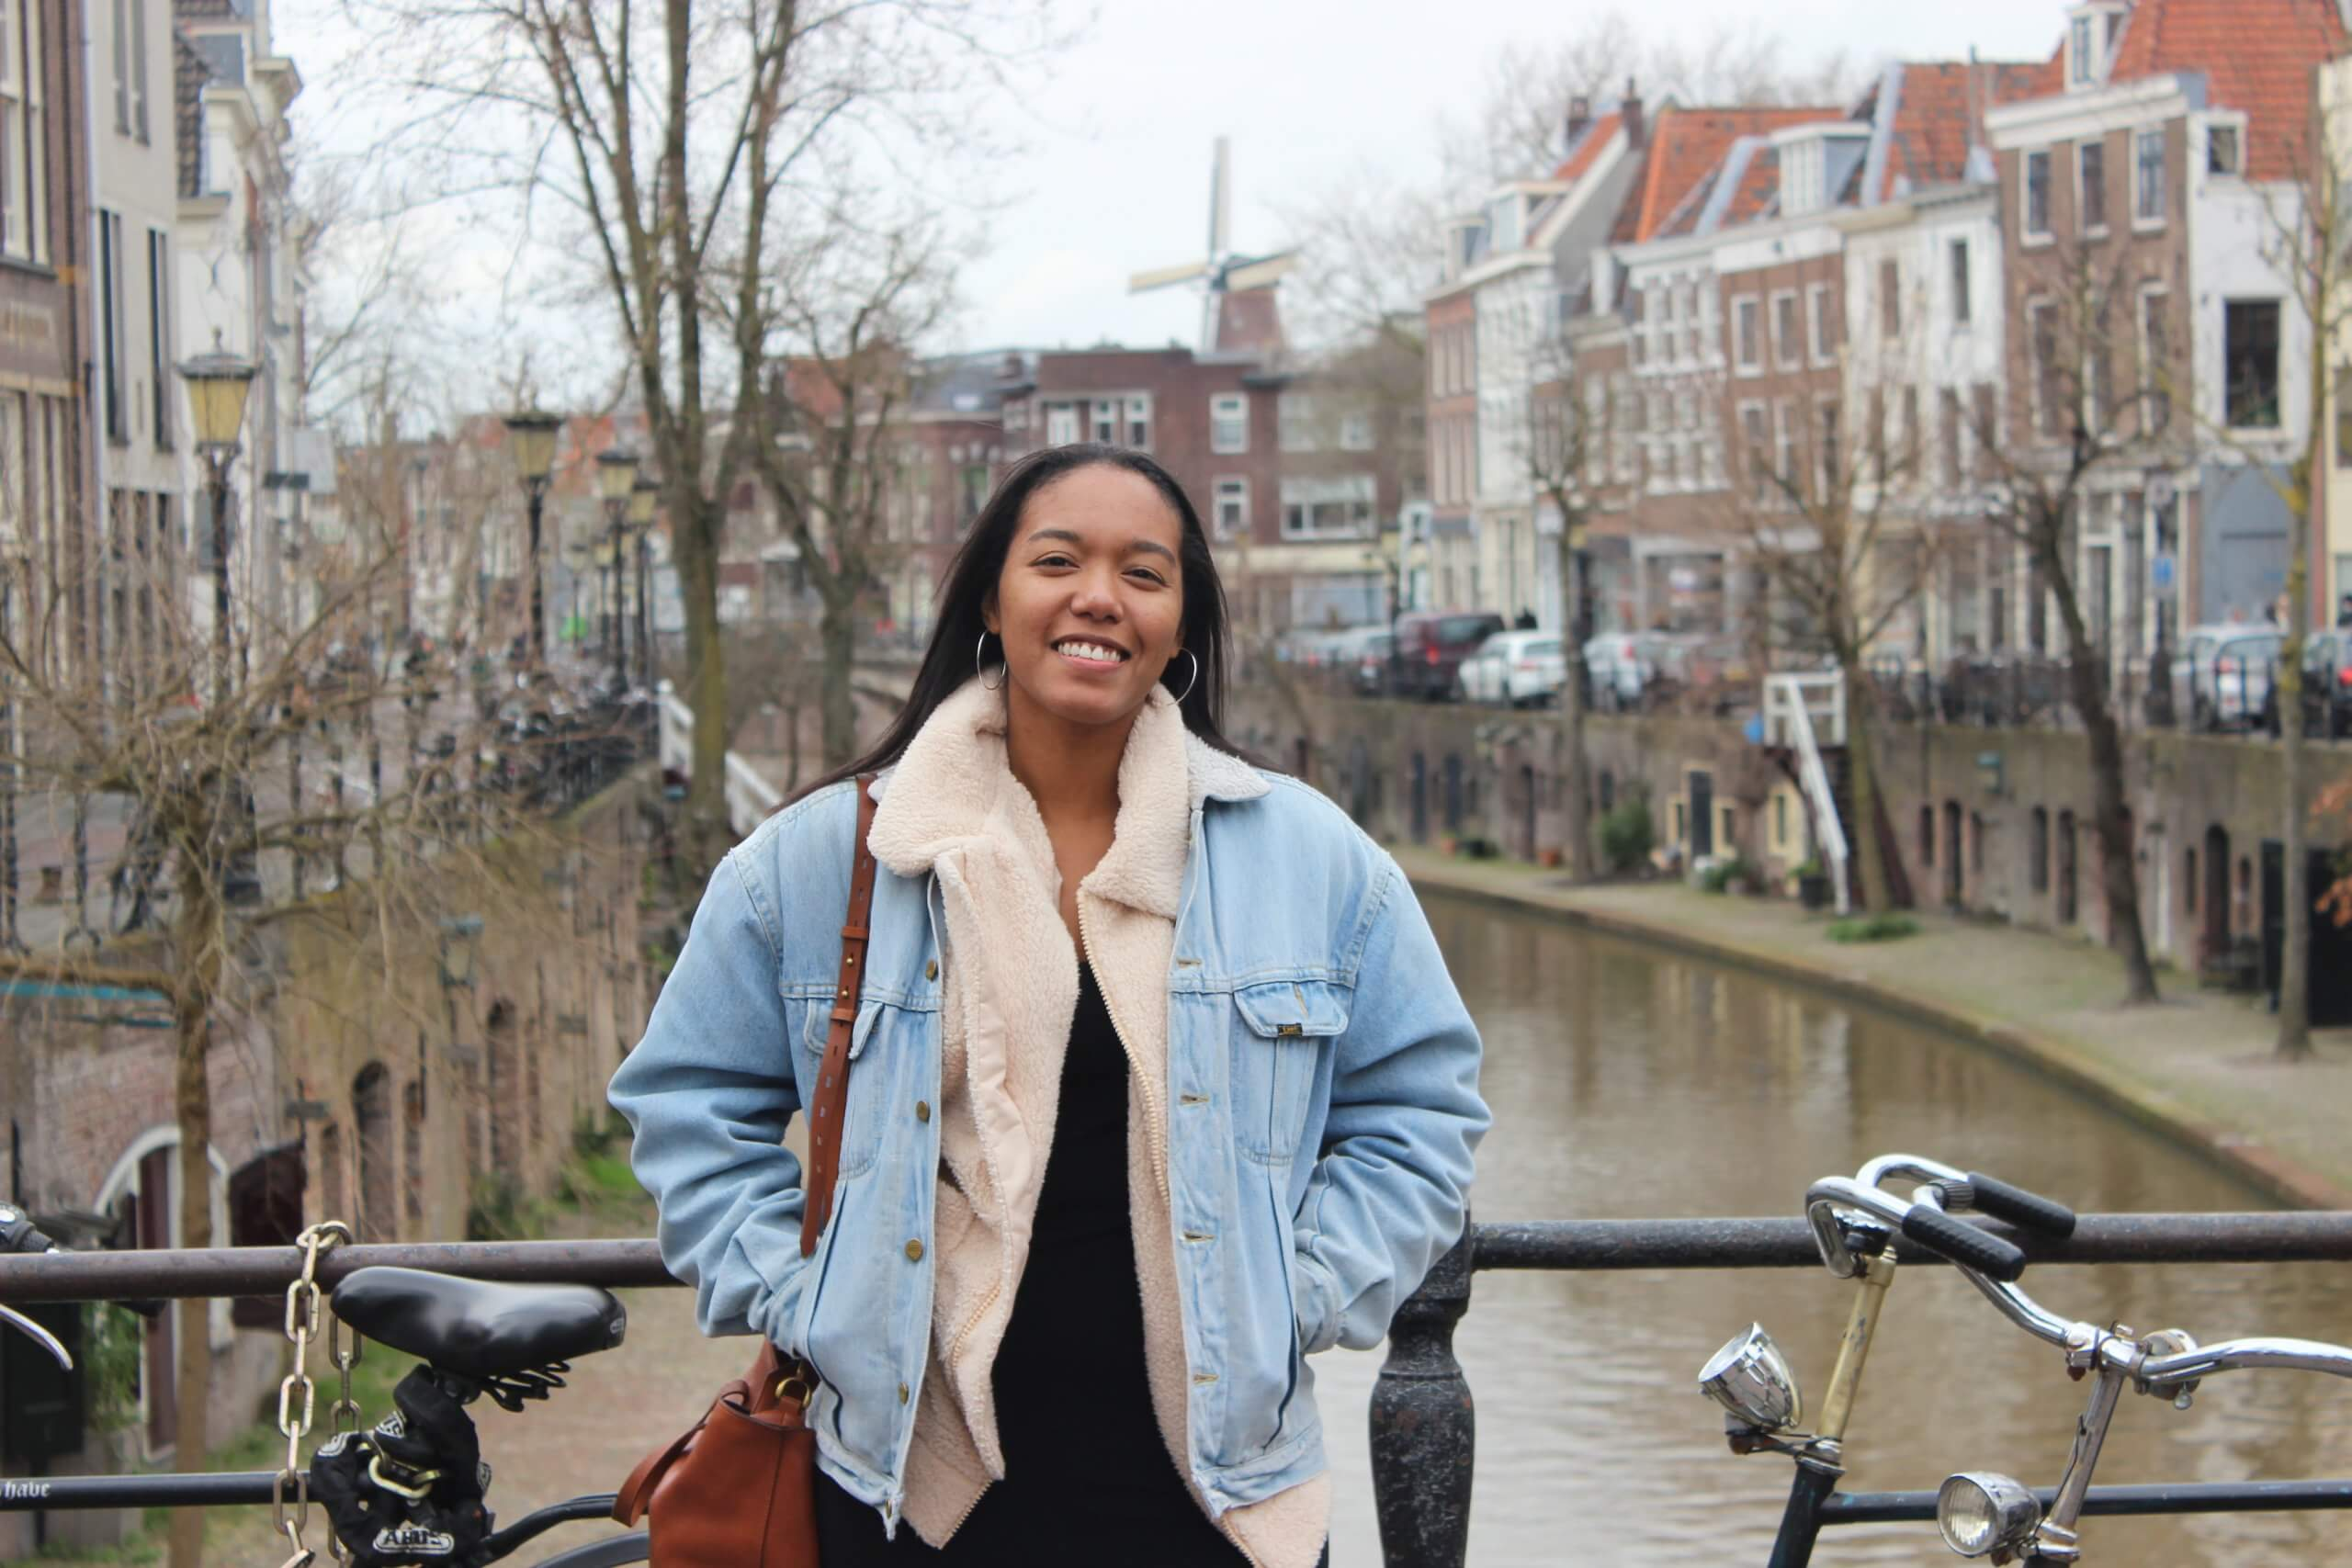 American blogger in Netherlands